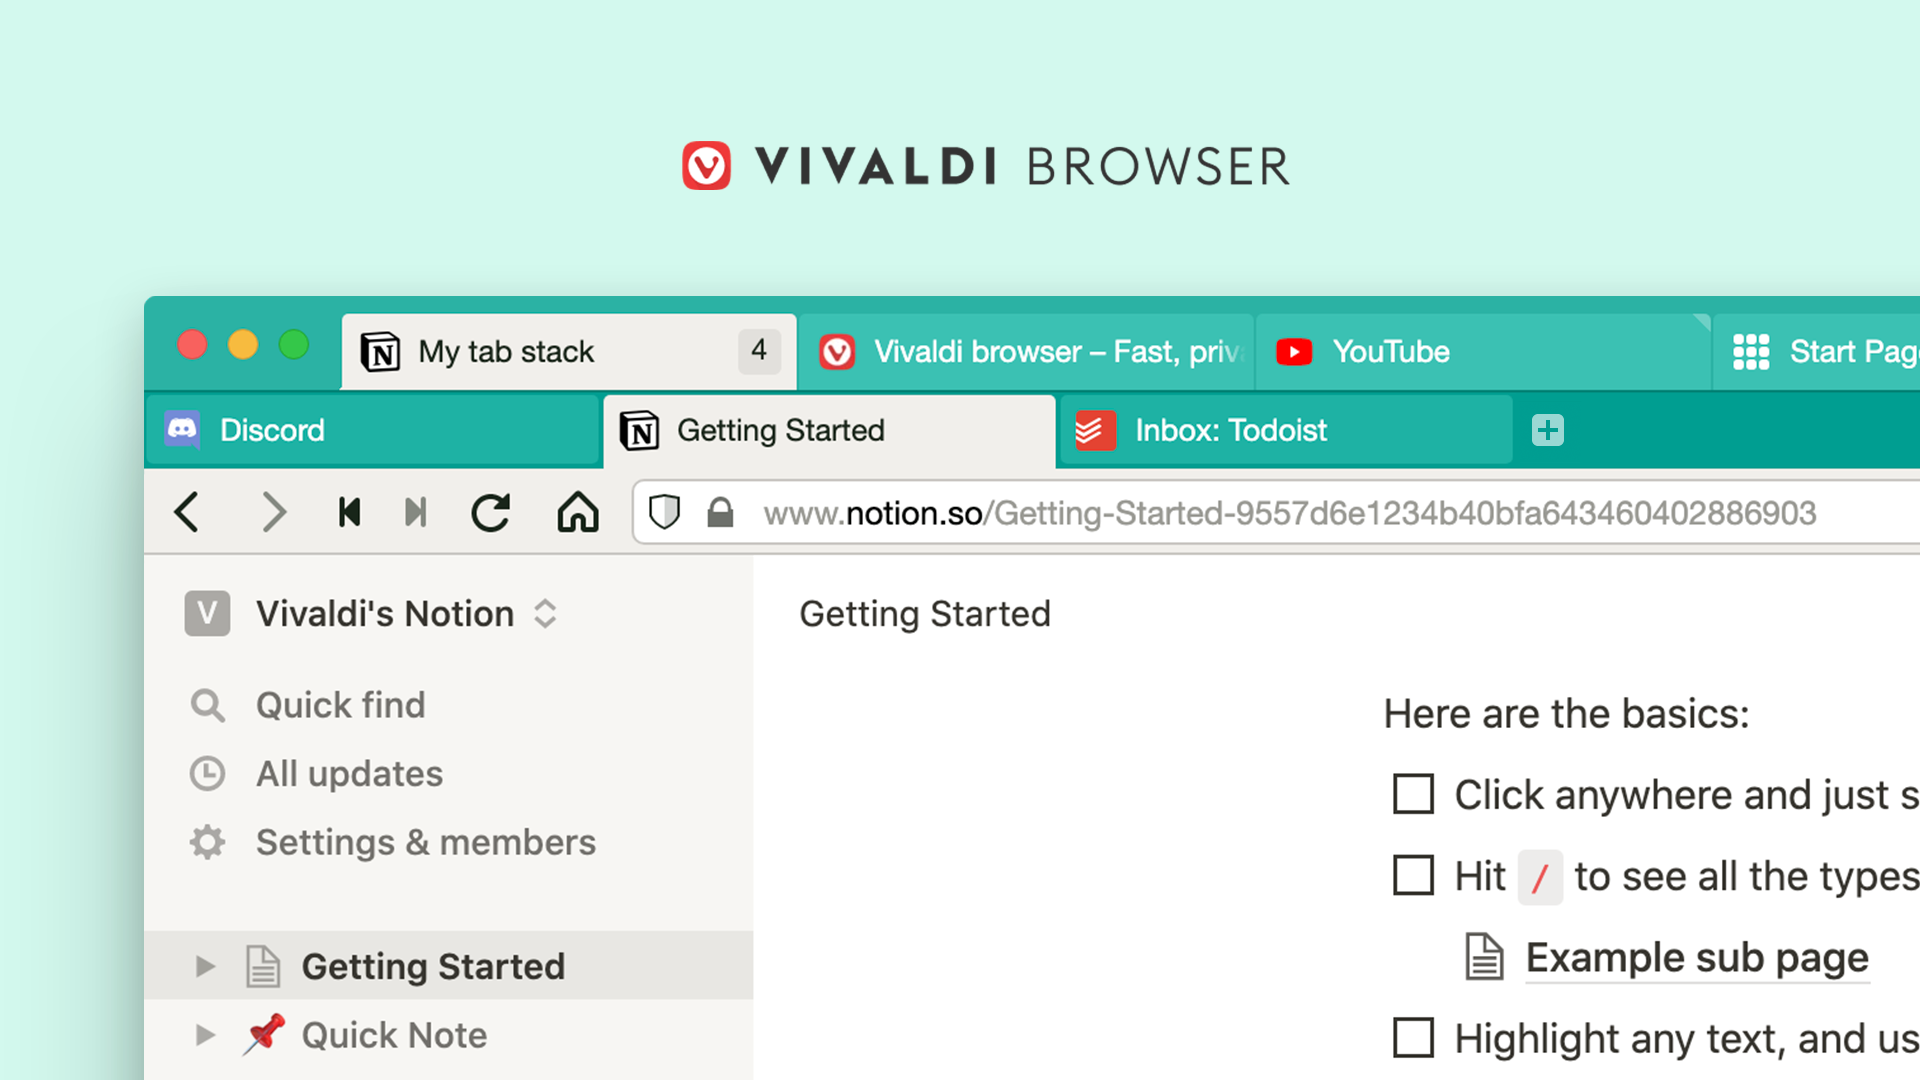 A teaser image promoting the tab stacks feature in the Vivaldi web browser